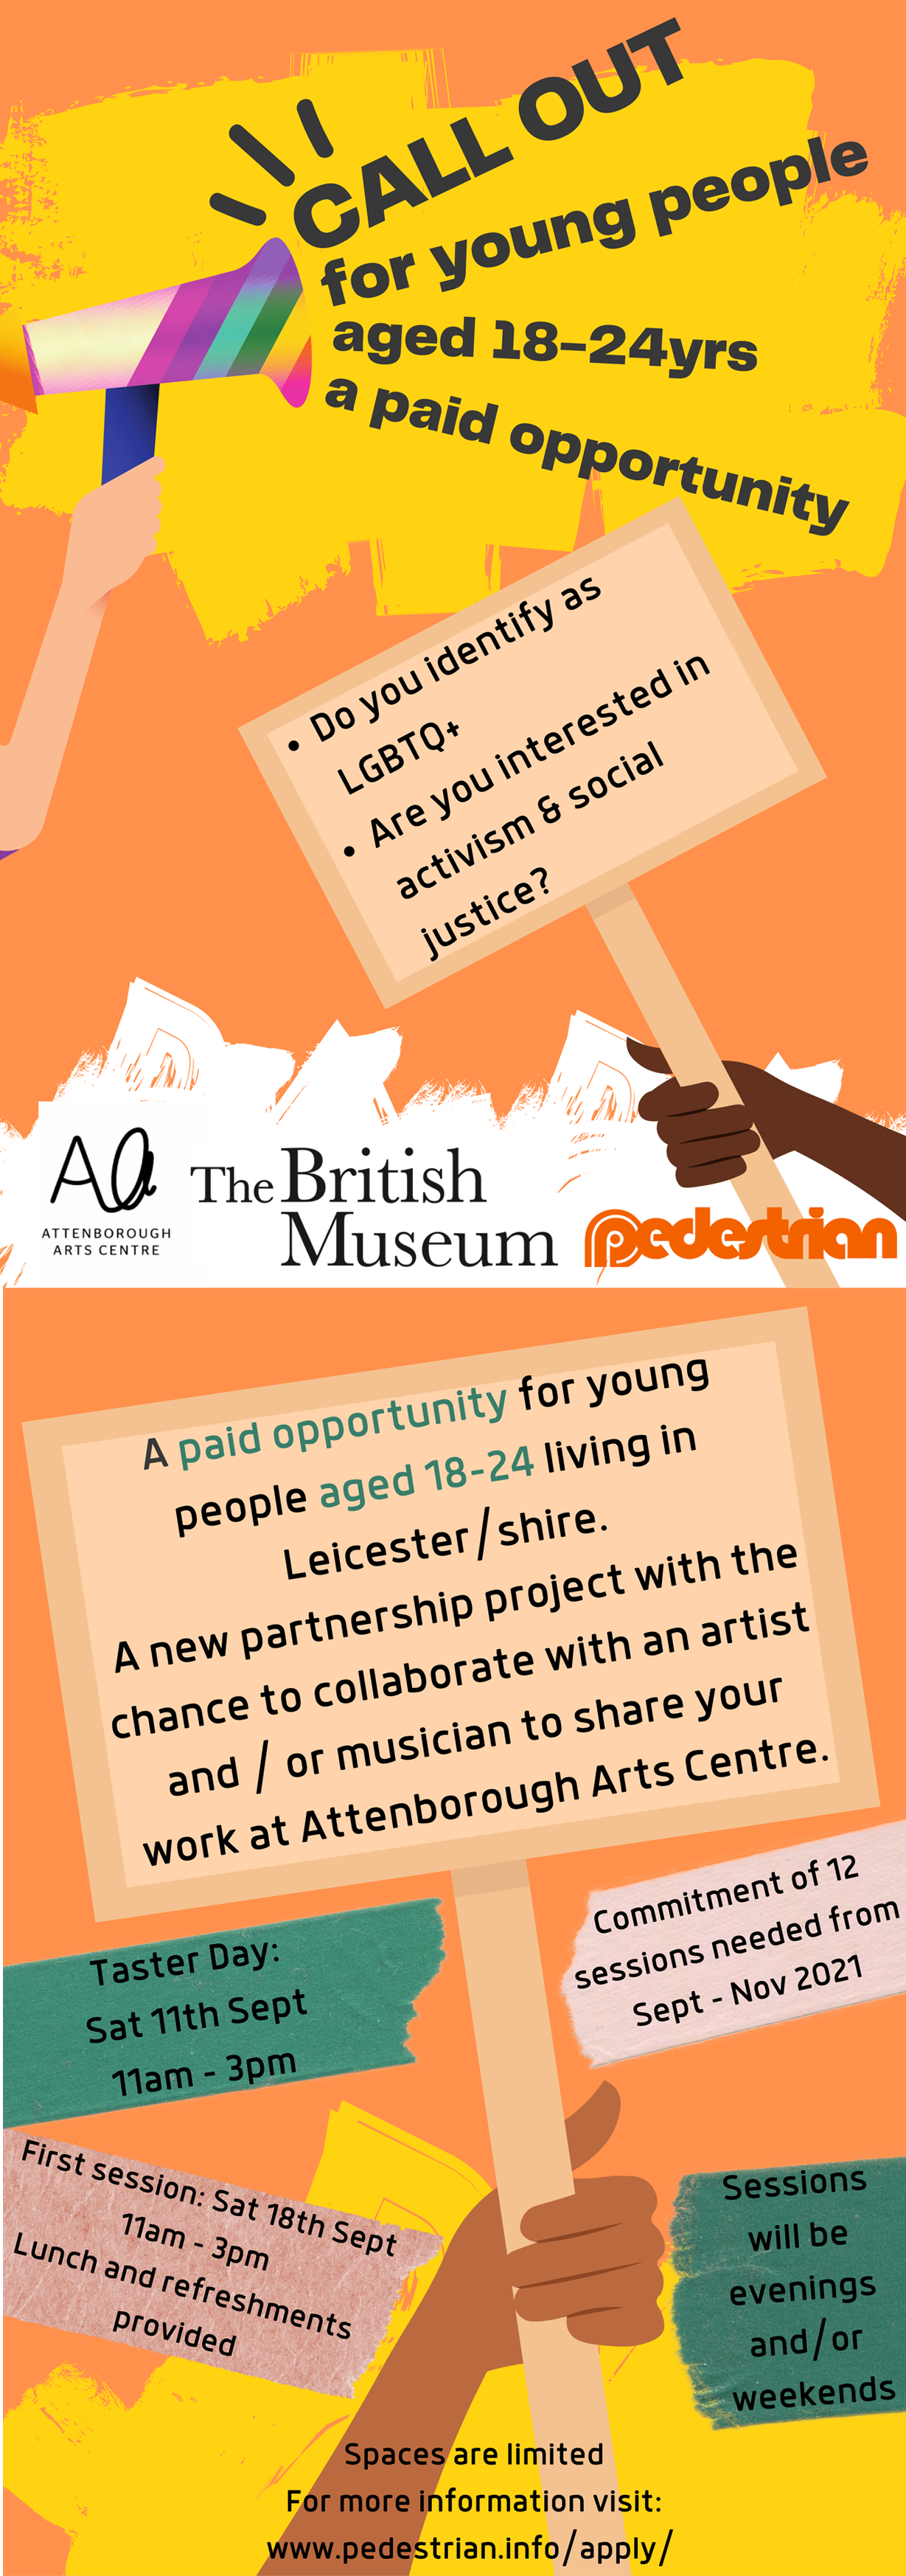 Where we are partnership project with The British Museum & Attenborough Arts flyer. Call out for young people who identify as LGBTQ+.